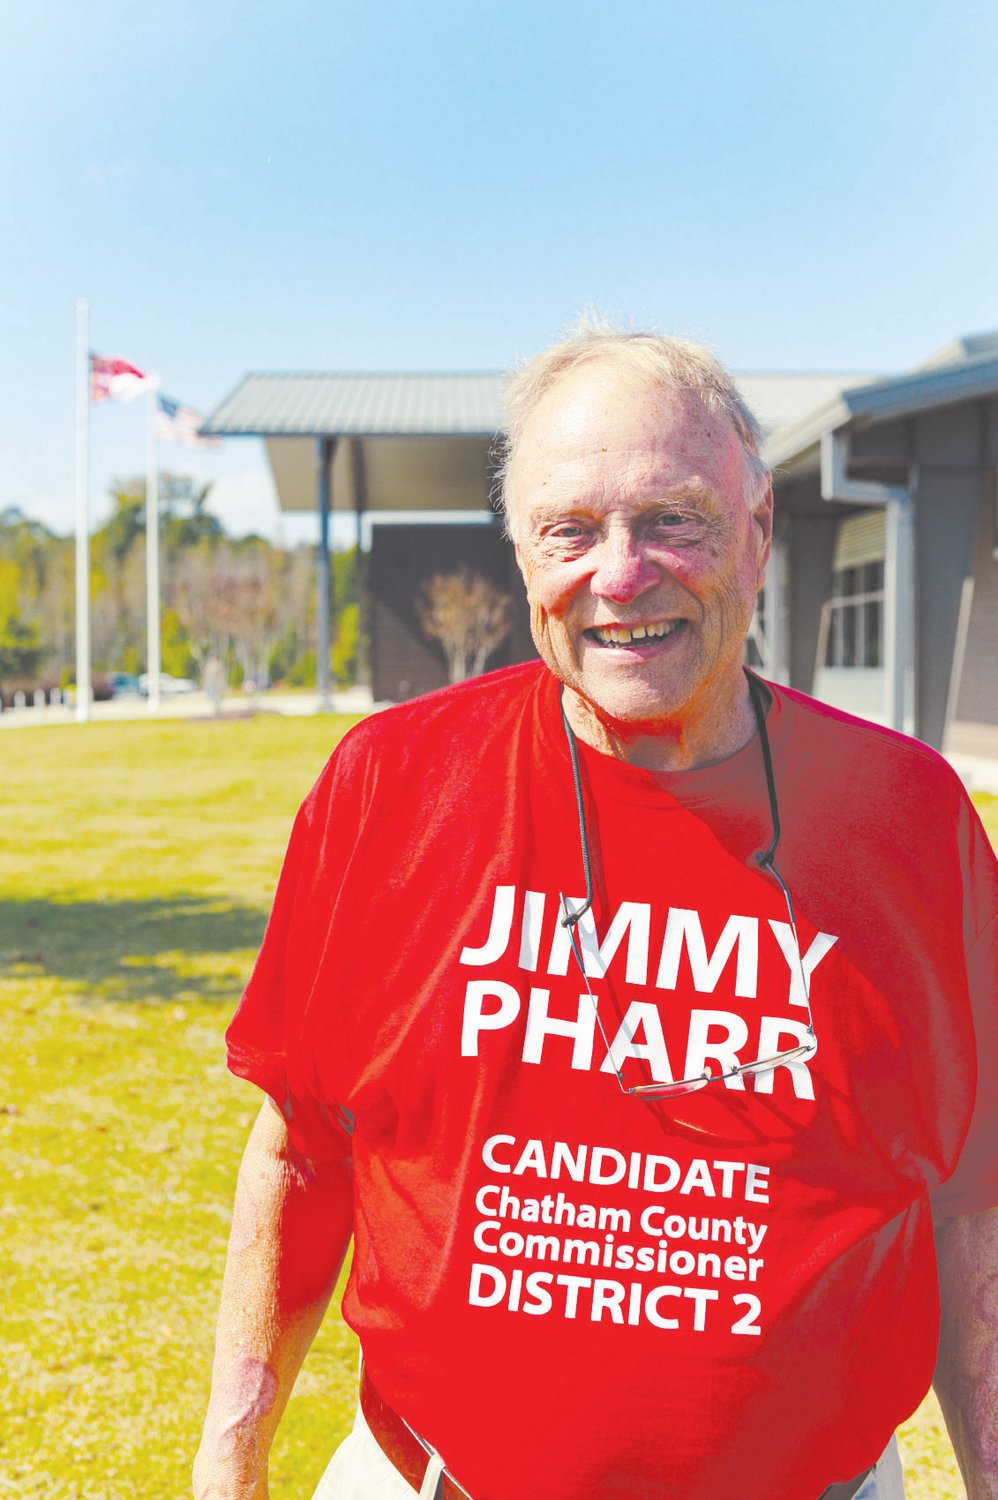 'It's been fun,' Commissioner candidate Jimmy Pharr said. 'People have been very nice, very respectful.'